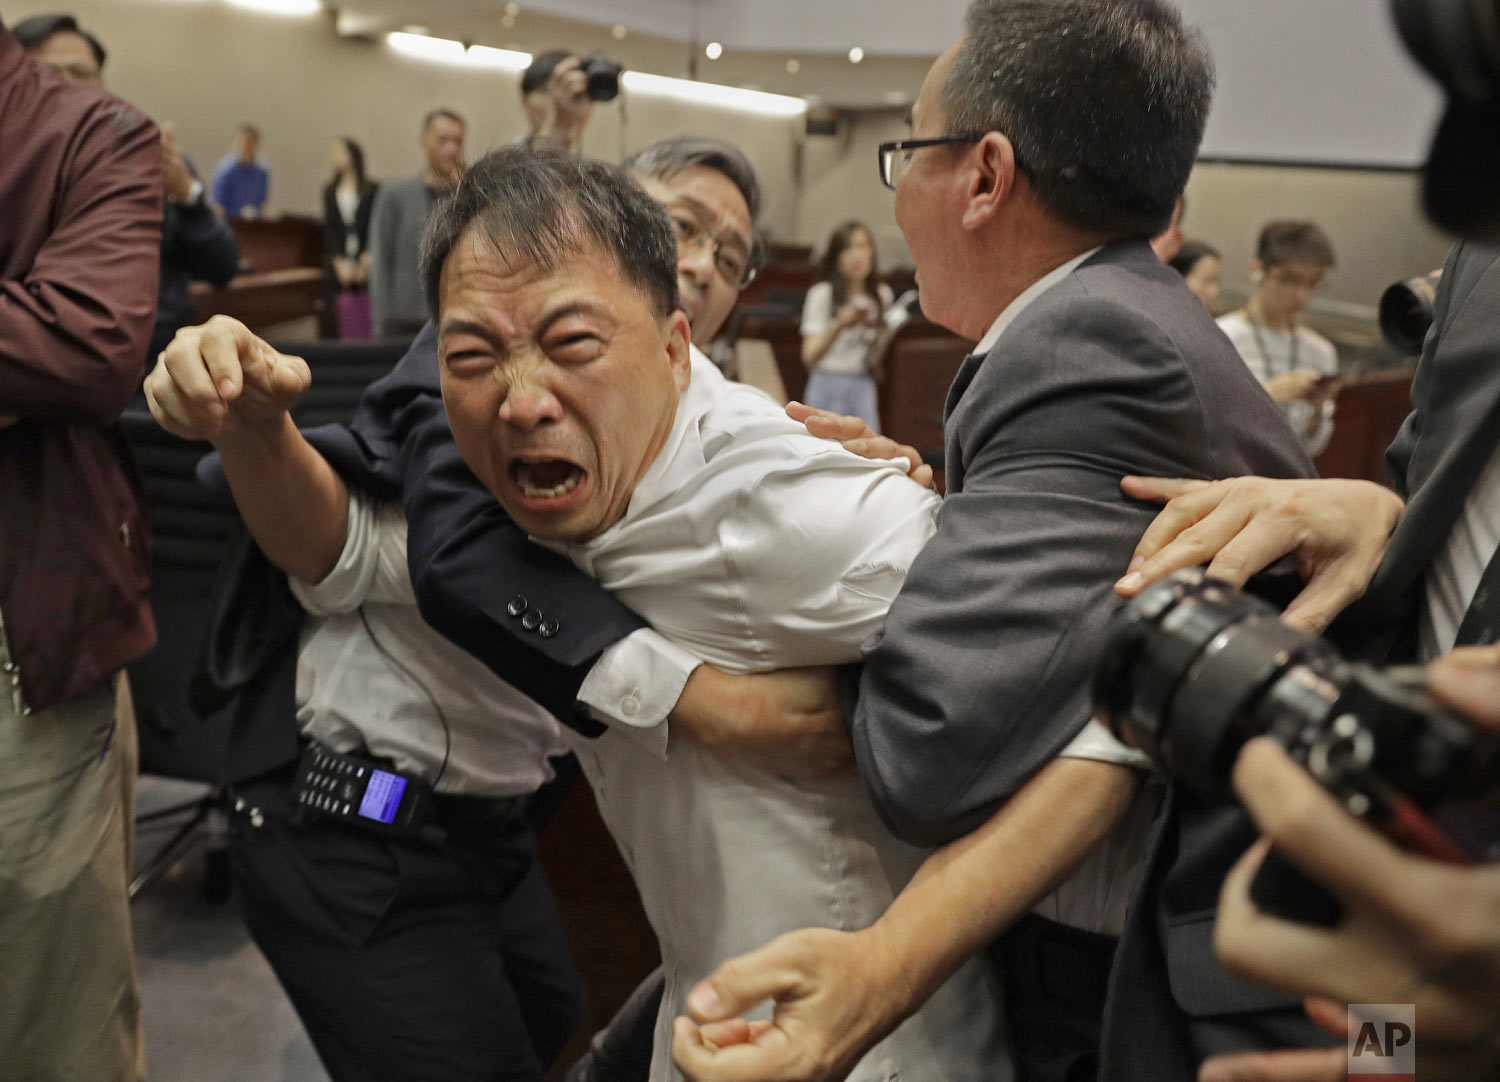 Pro-democracy lawmaker Wu Chi-wai, center, is restrained by security guards at the Legislative Council in Hong Kong, Saturday, May 11, 2019. Hong Kong's legislative assembly descended into chaos Saturday as lawmakers for and against controversial amendments to the territory's extradition law clashed over access to the chamber. (AP Photo/Vincent Yu)